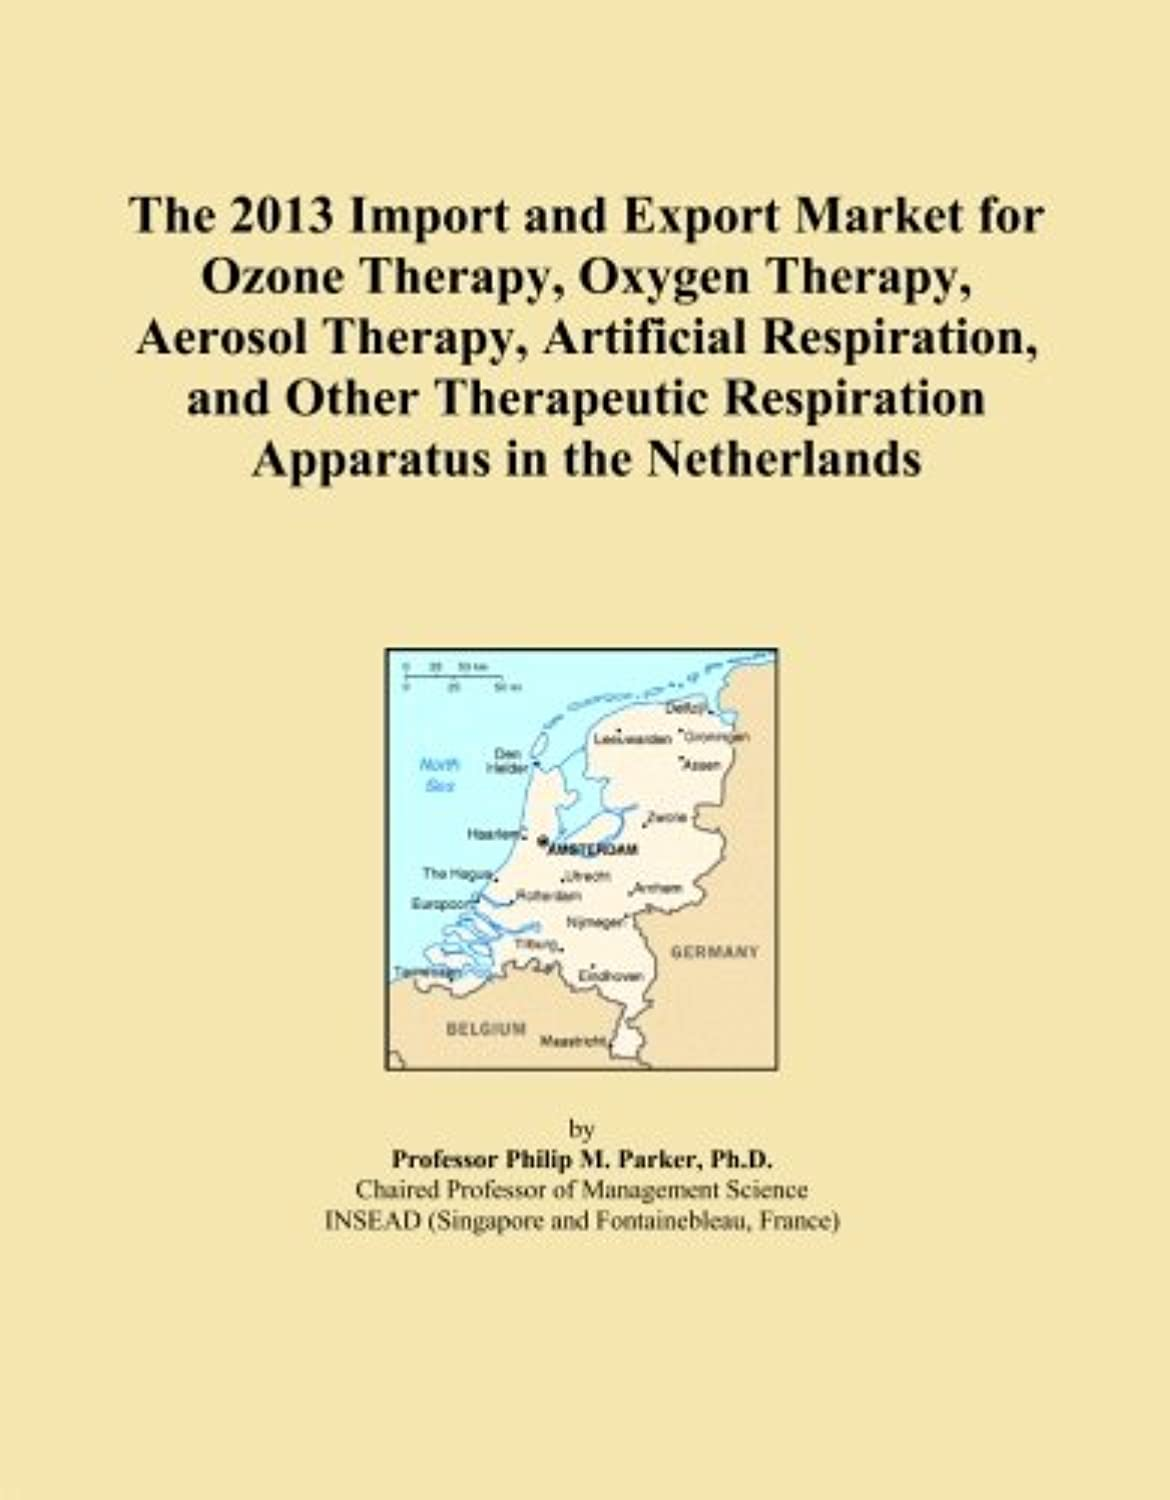 The 2013 Import and Export Market for Ozone Therapy, Oxygen Therapy, Aerosol Therapy, Artificial Respiration, and Other Therapeutic Respiration Apparatus in the Netherlands